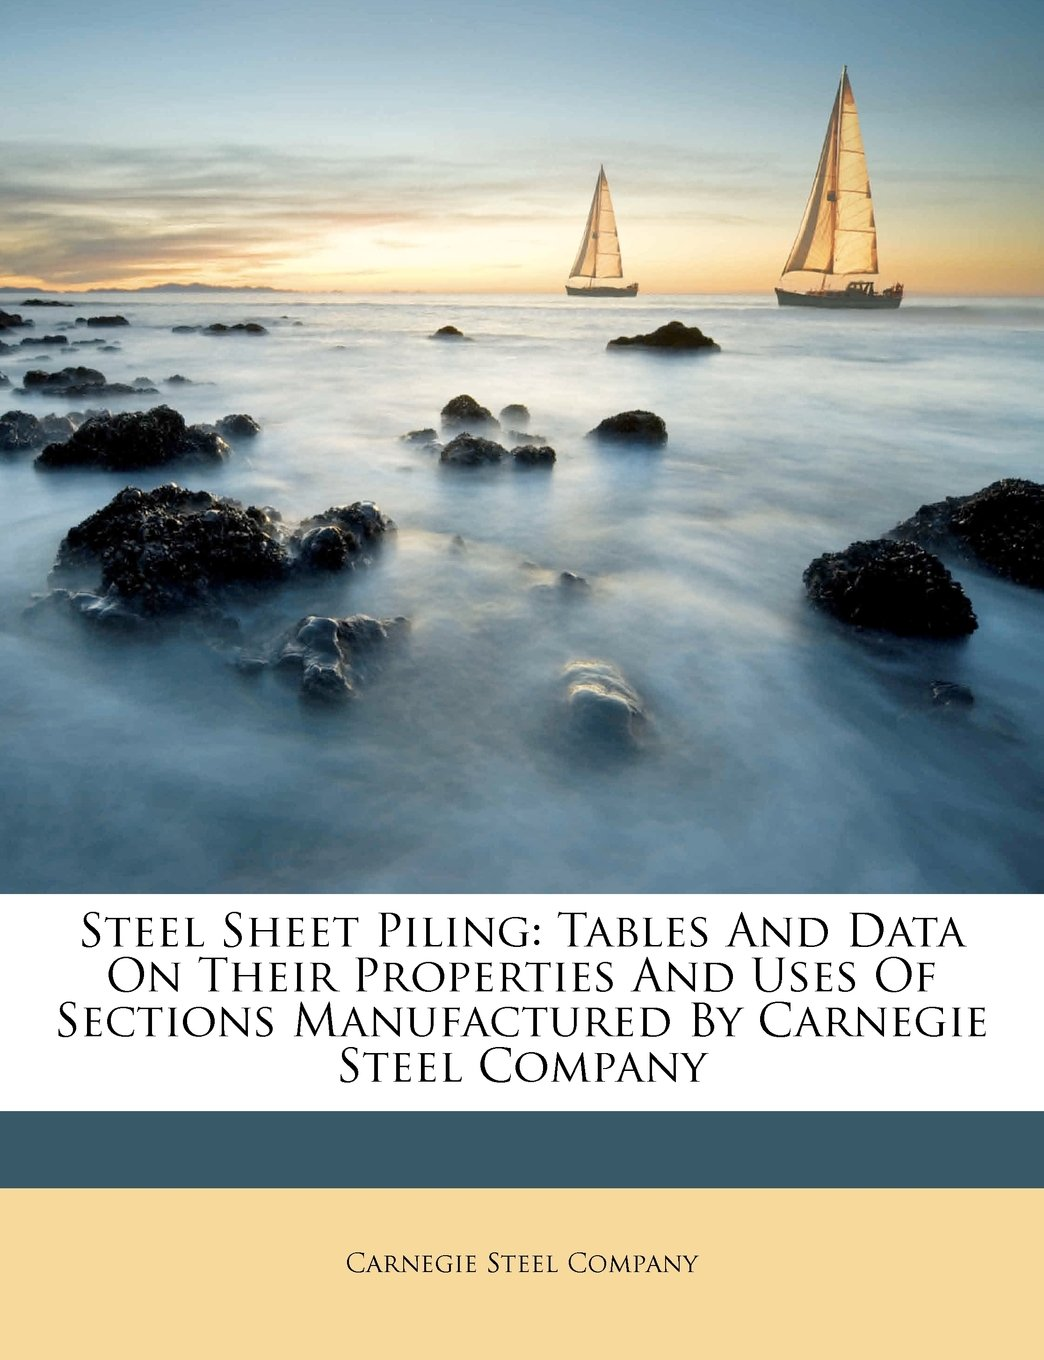 Steel Sheet Piling: Tables And Data On Their Properties And Uses Of Sections Manufactured By Carnegie Steel Company ebook